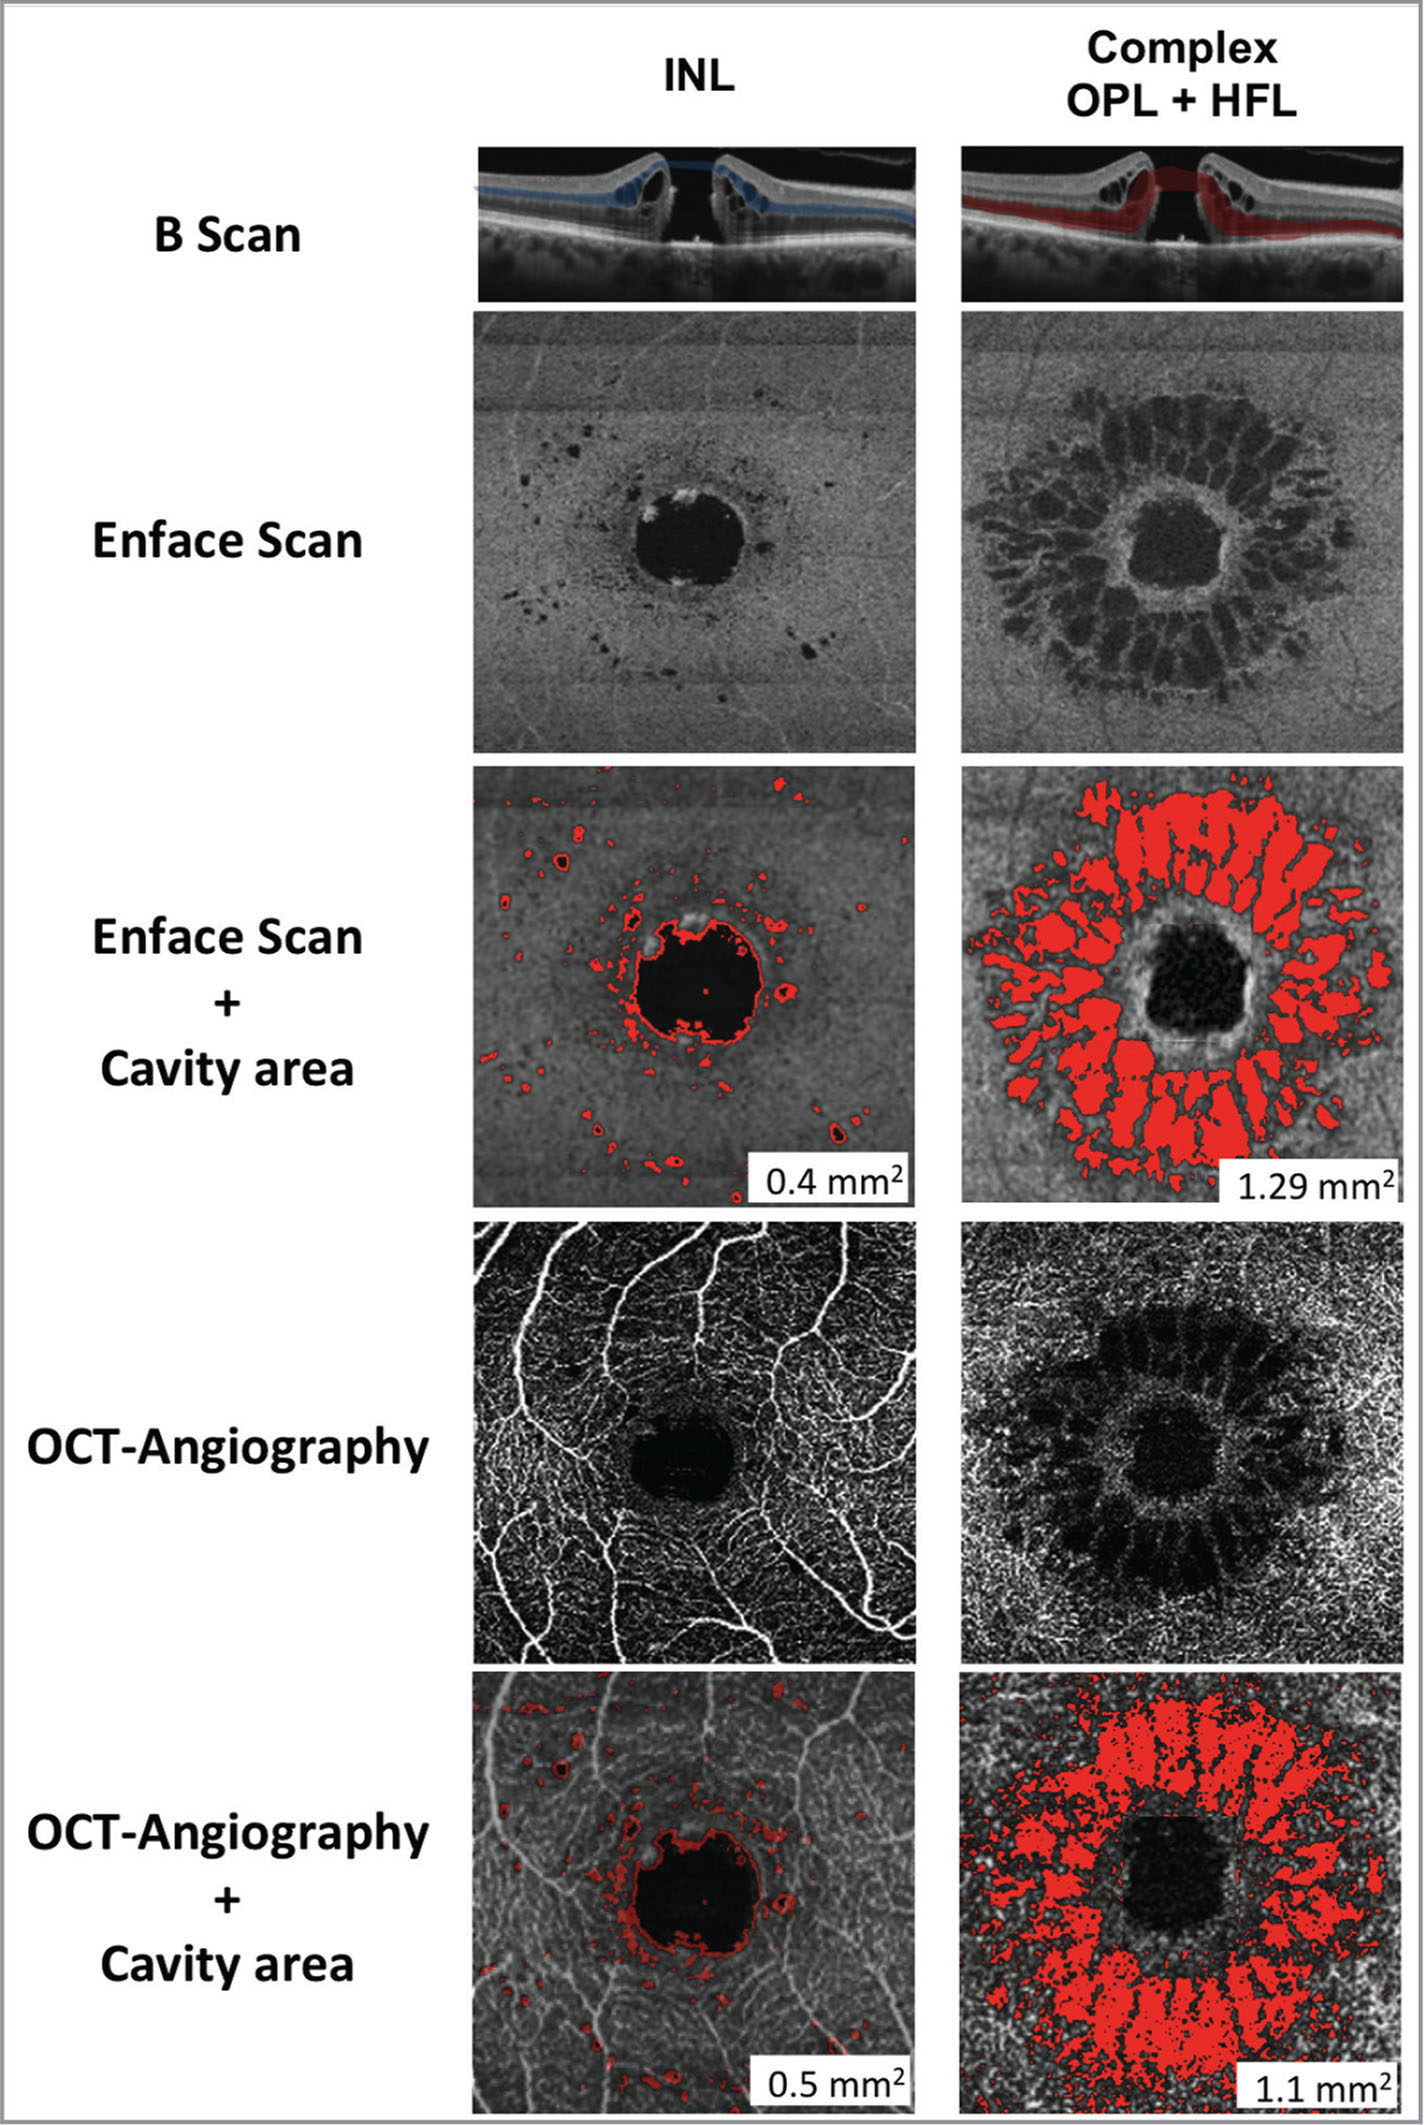 Automated identification of hyporeflective spaces in the inner nuclear layer (INL) and in the complex formed by the outer plexiform layer (OPL) and Henle fiber layer (HFL) on en face scan and optical coherence tomography angiography (OCTA). (Top row) OCT B-scan displaying the outline of the plane of the en face section (Blue: INL; Red: OPL + HFL). (Second row) En face OCT showing the distinct patterns of hyporeflective spaces in the INL and the complex of the OPL and HFL. (Third row) Automated detection of the cavity area from the en face images (in red) by Image J software. (Fourth row) OCTA showing the distinct patterns of hyporeflective spaces in the INL and the complex of the OPL and HFL. (Last row) Automated detection of the cavity area from the OCTA images (in red) by Image J software.